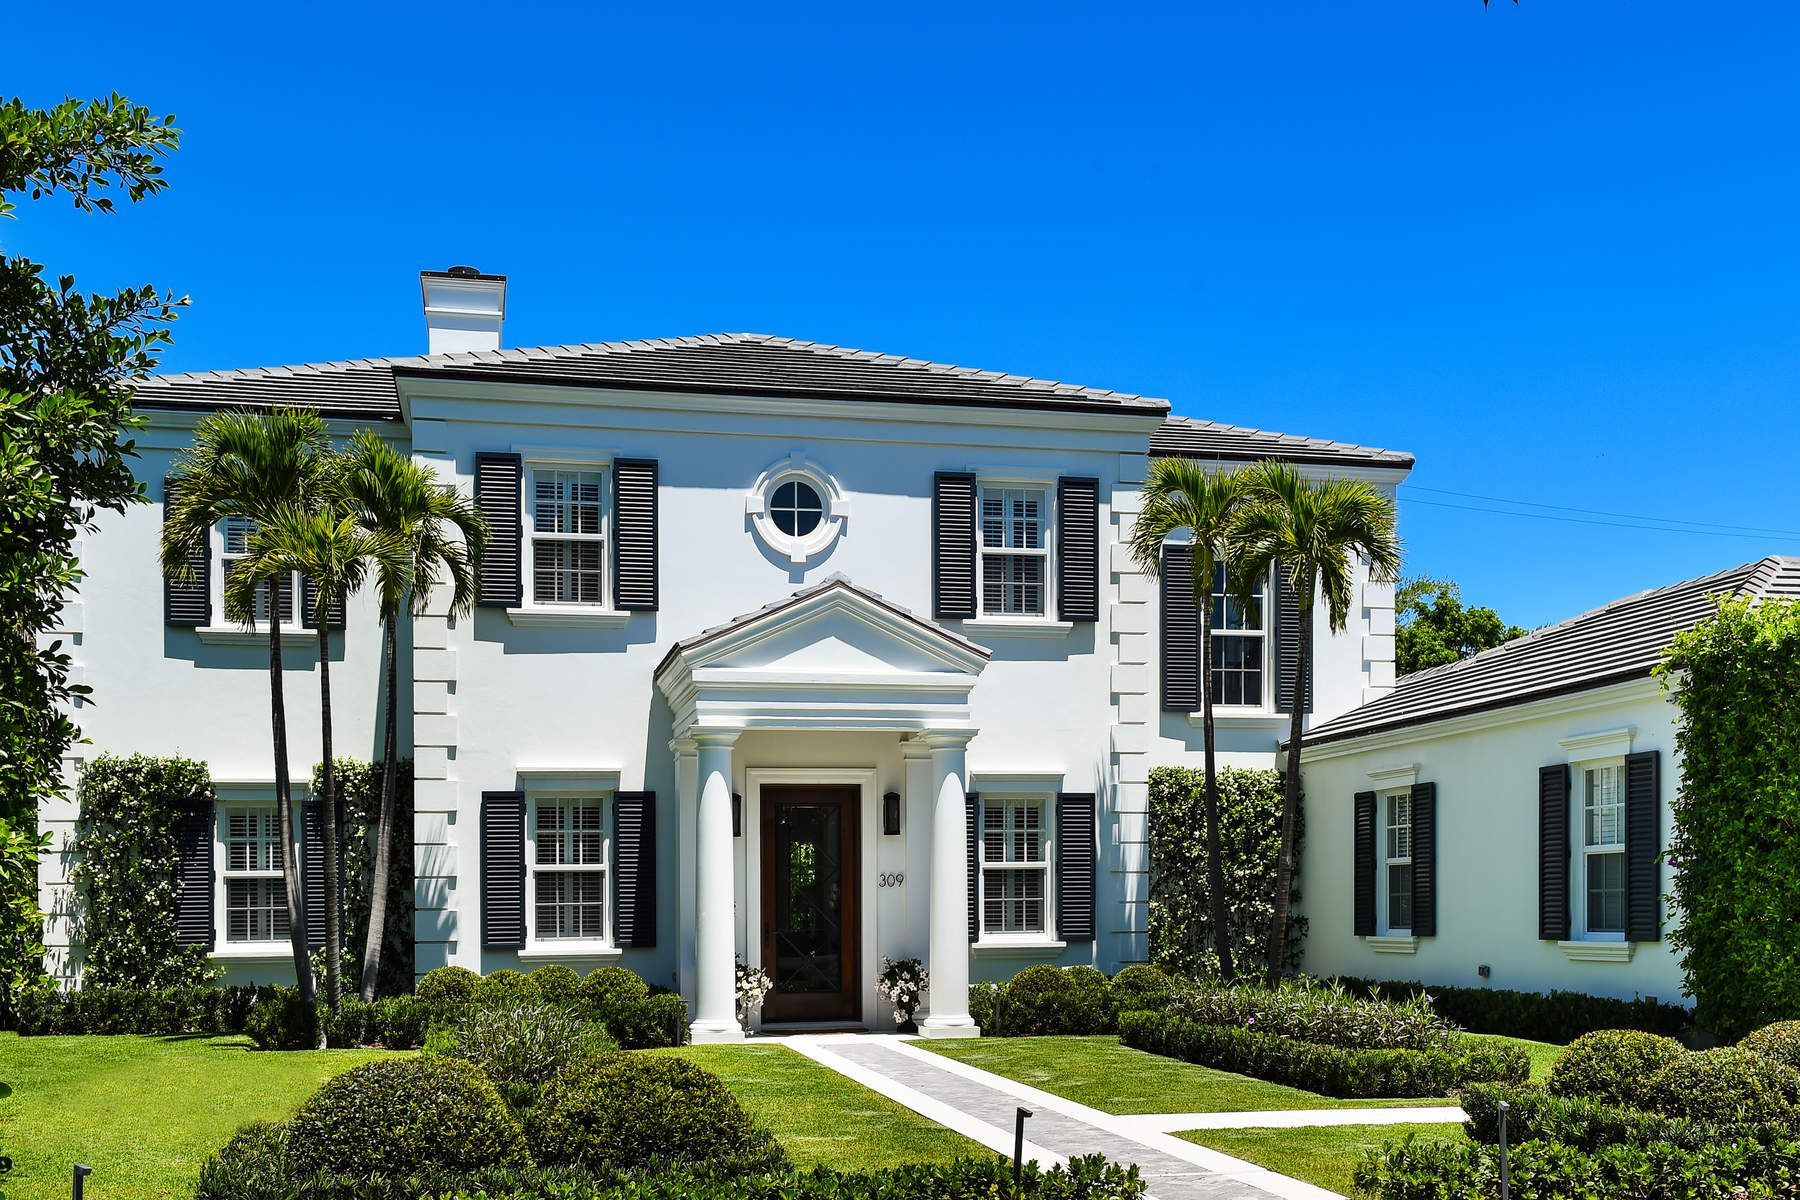 Single Family Home for Sale at Gracious In-Town Estate 309 Dunbar Rd Palm Beach, Florida 33480 United States